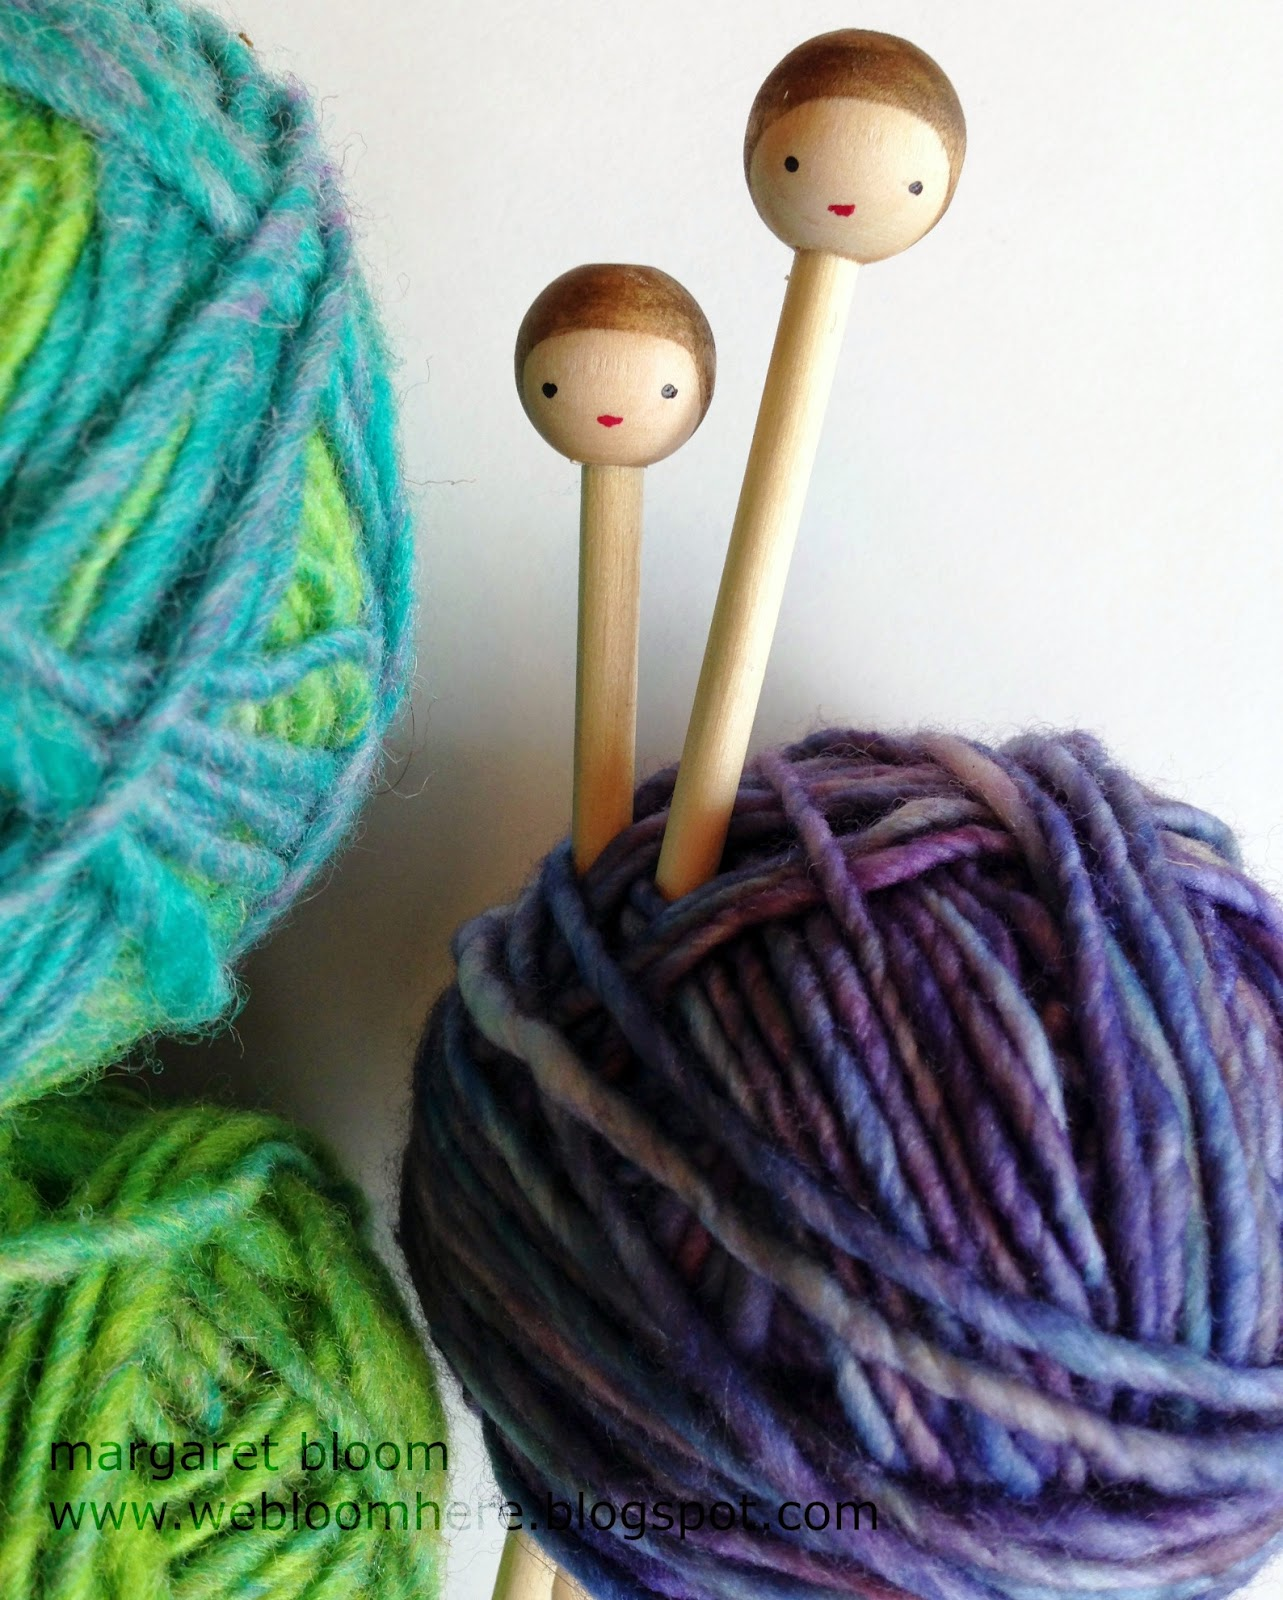 http://webloomhere.blogspot.com/2014/11/hair-sticks-knitting-needles-tutorial.html